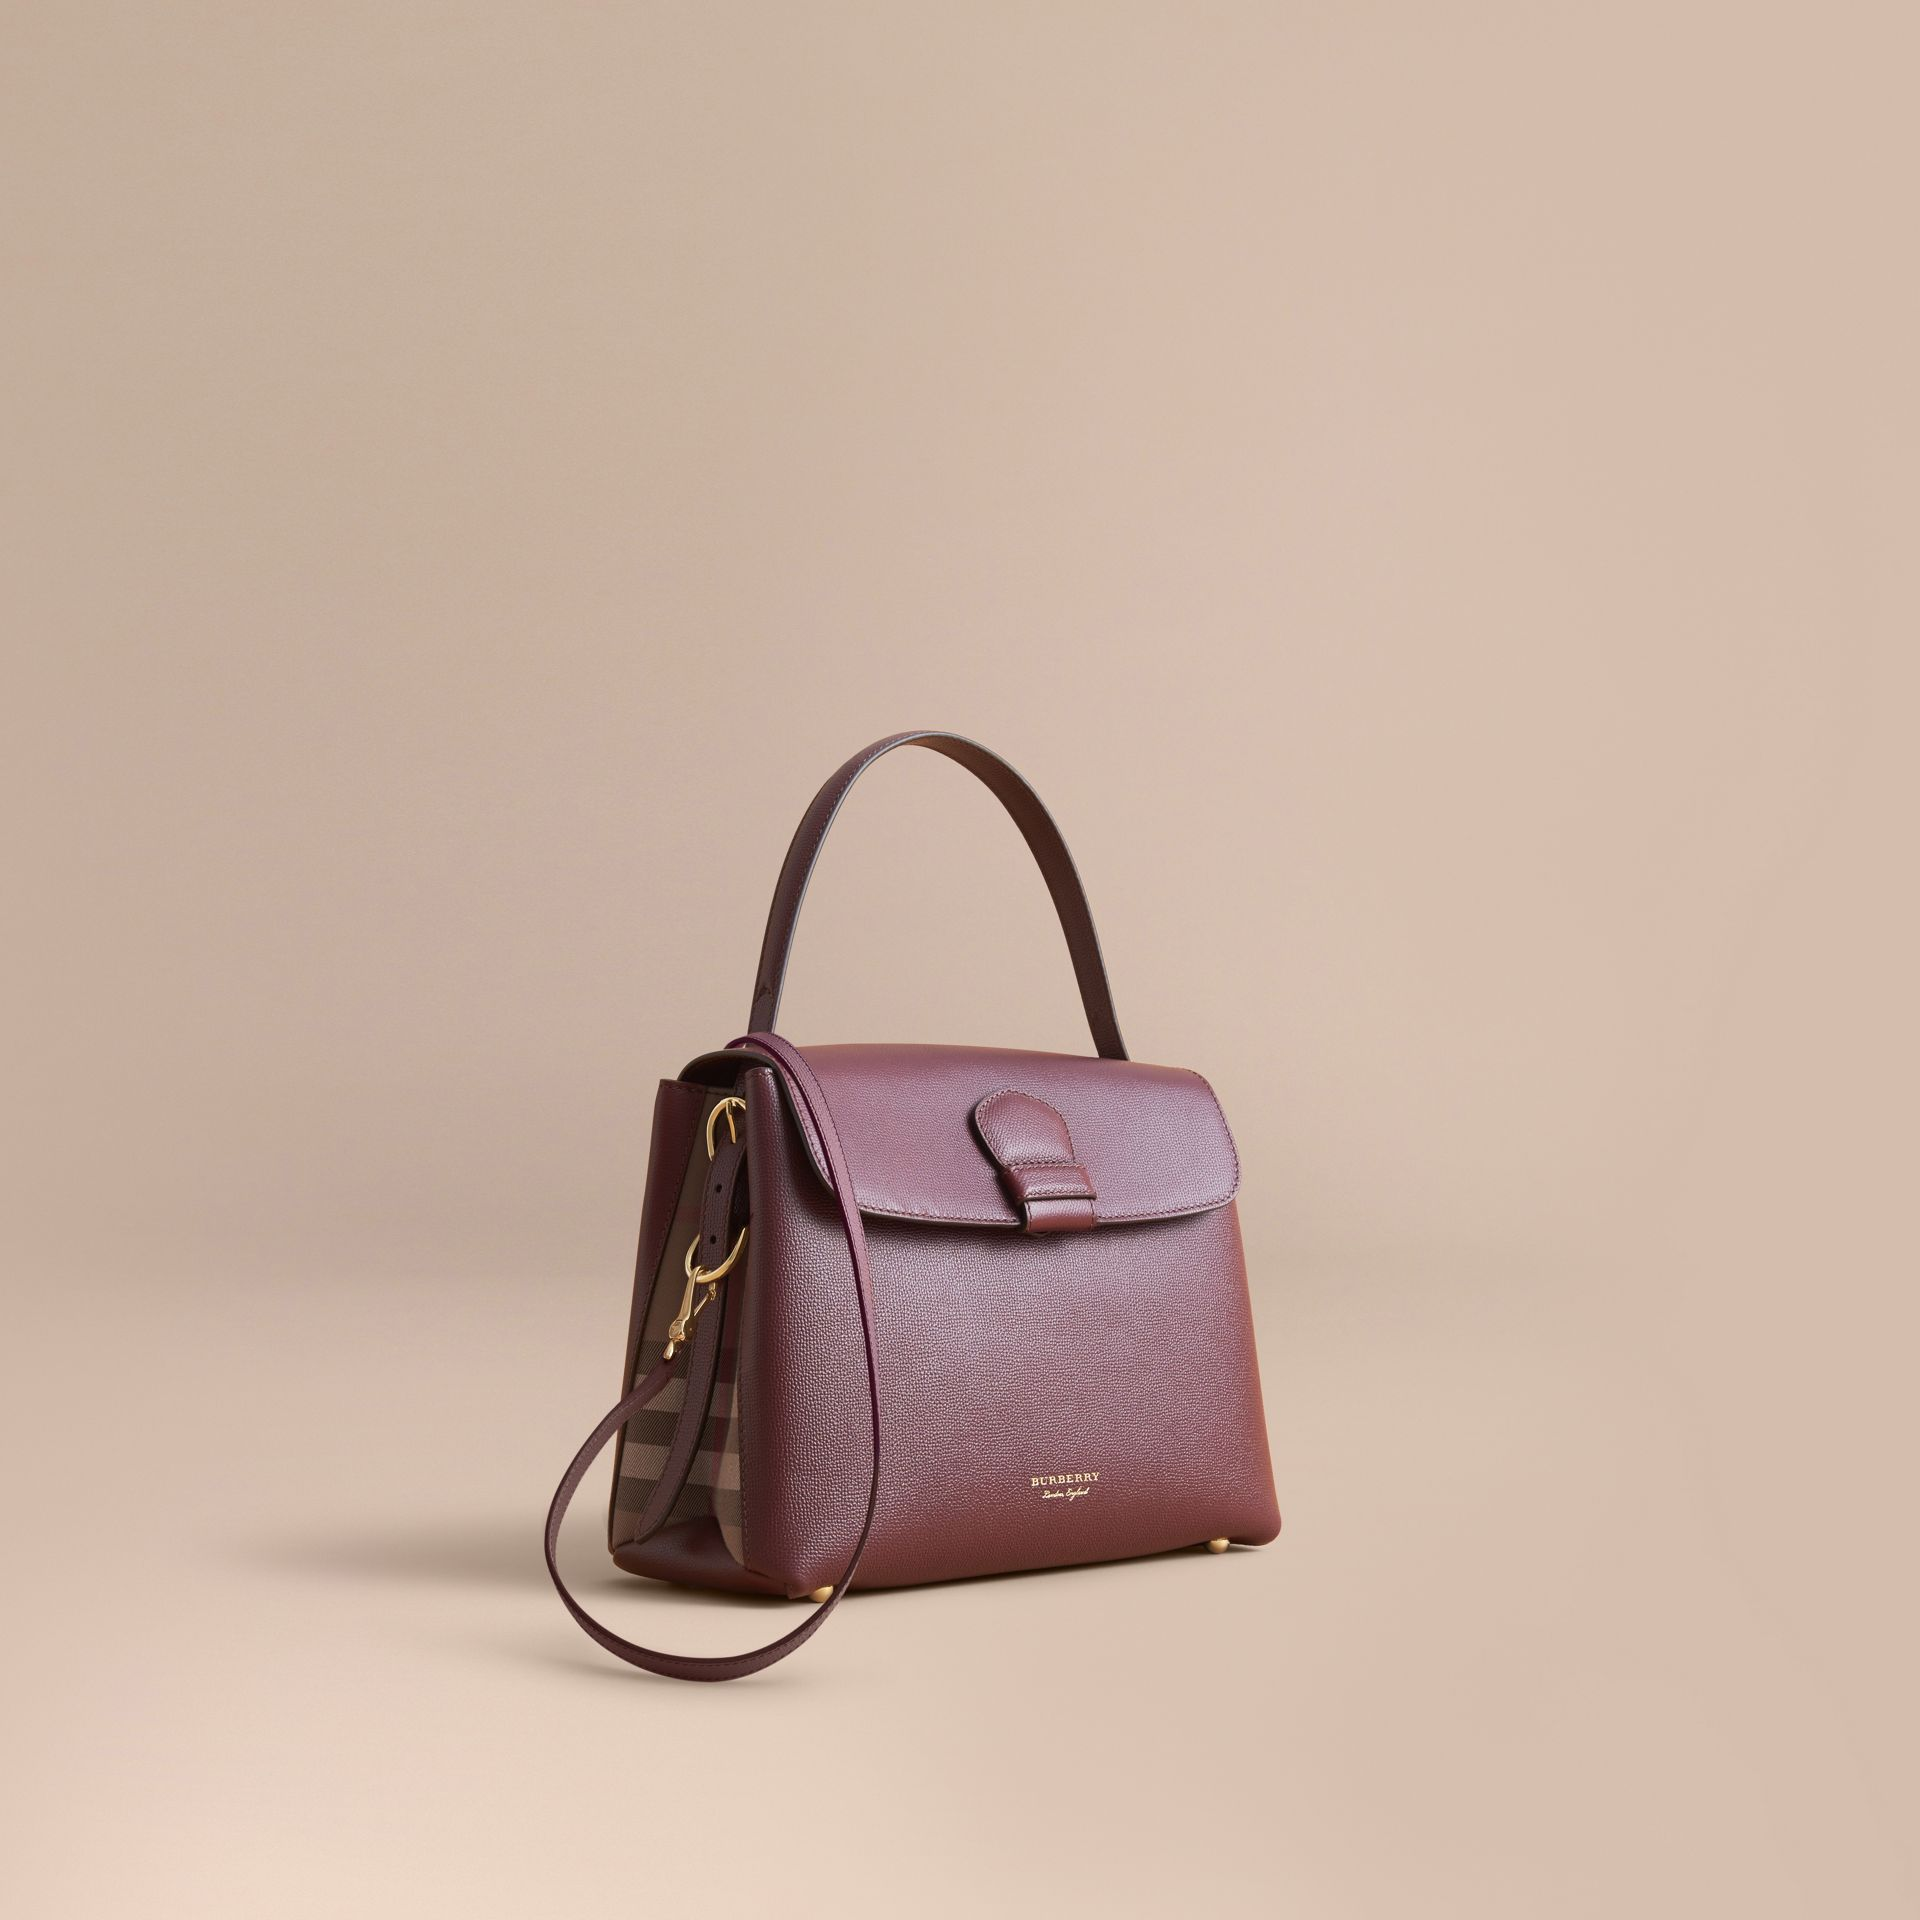 Medium Grainy Leather and House Check Tote Bag in Mahogany Red - Women | Burberry Australia - gallery image 1